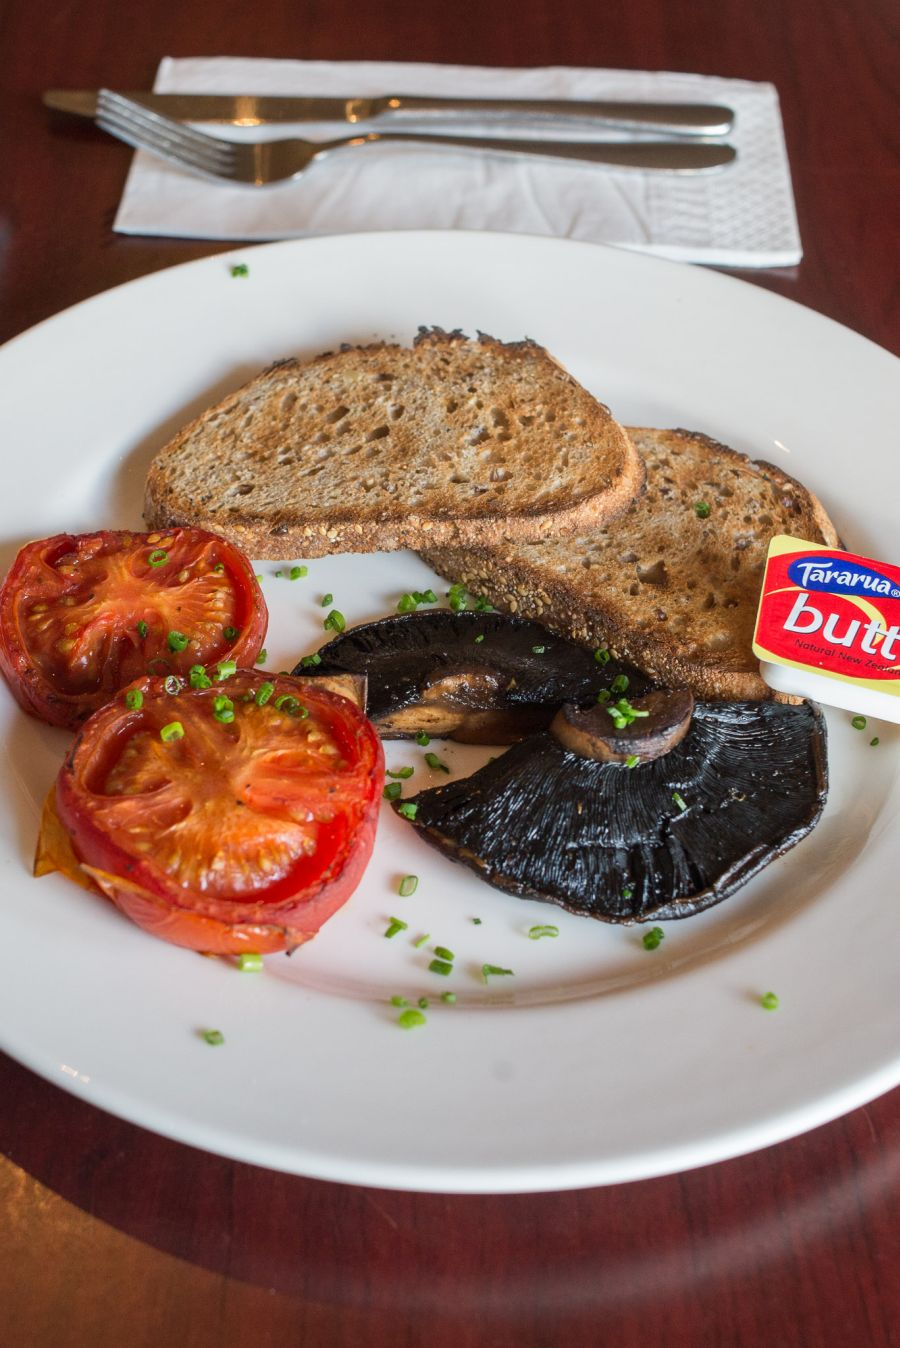 Field mushrooms and tomatoes with wholegrain toast (NZ$11)